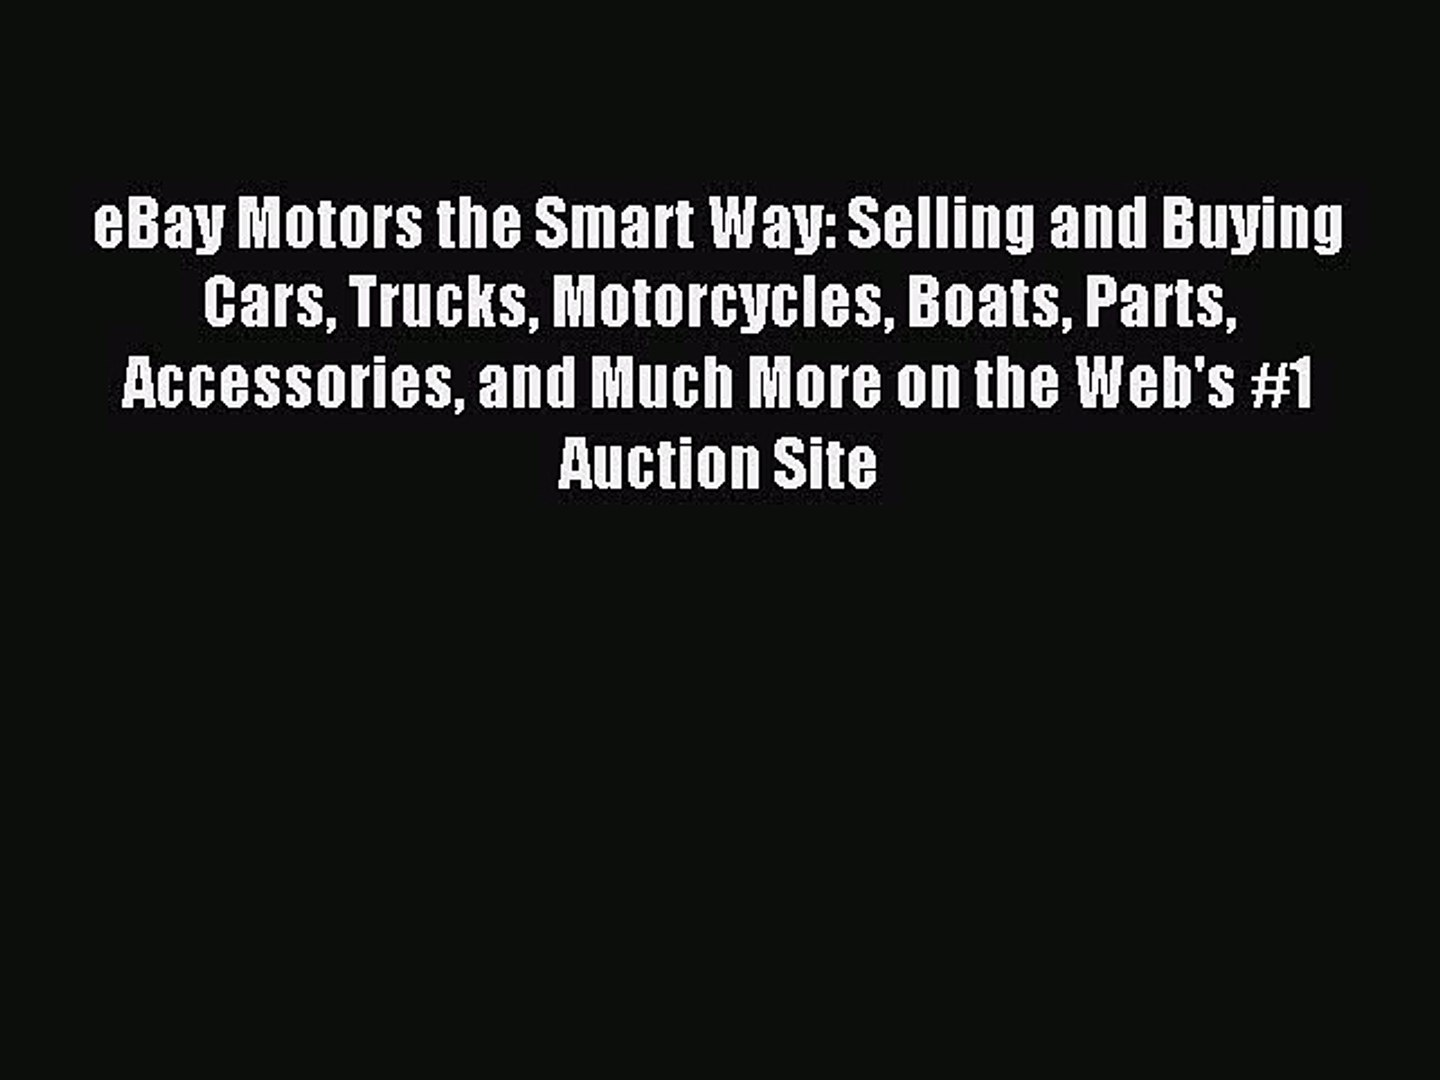 Read Ebay Motors The Smart Way Selling And Buying Cars Trucks Motorcycles Boats Parts Accessories Video Dailymotion